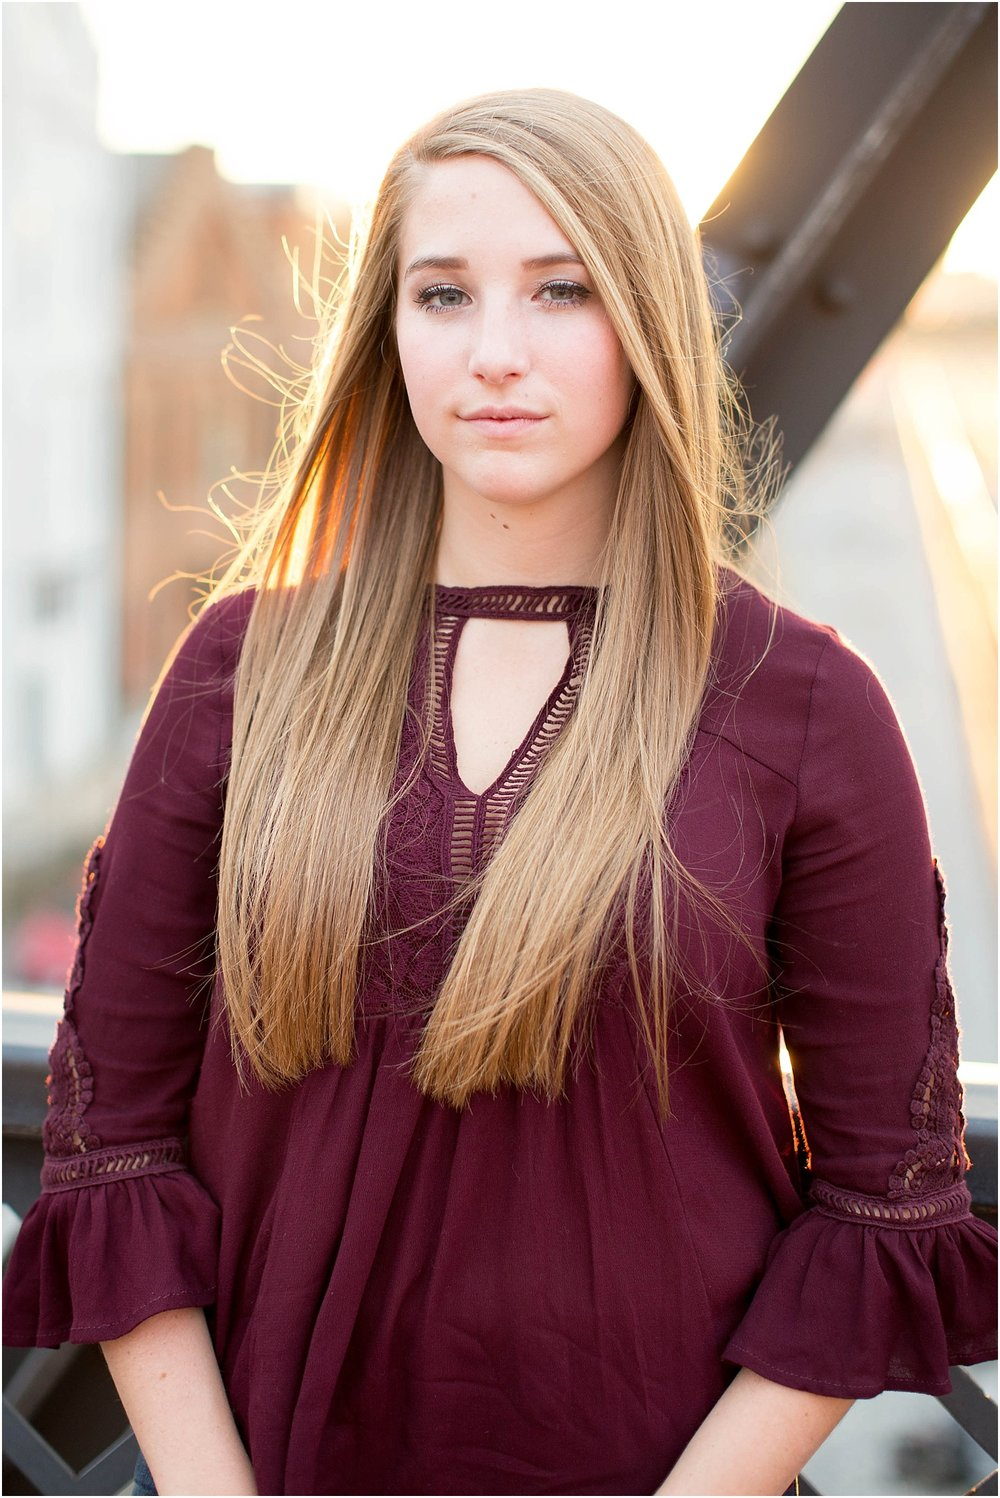 Senior Portraits | Ashley Powell Photography | Roanoke, VA Photographer